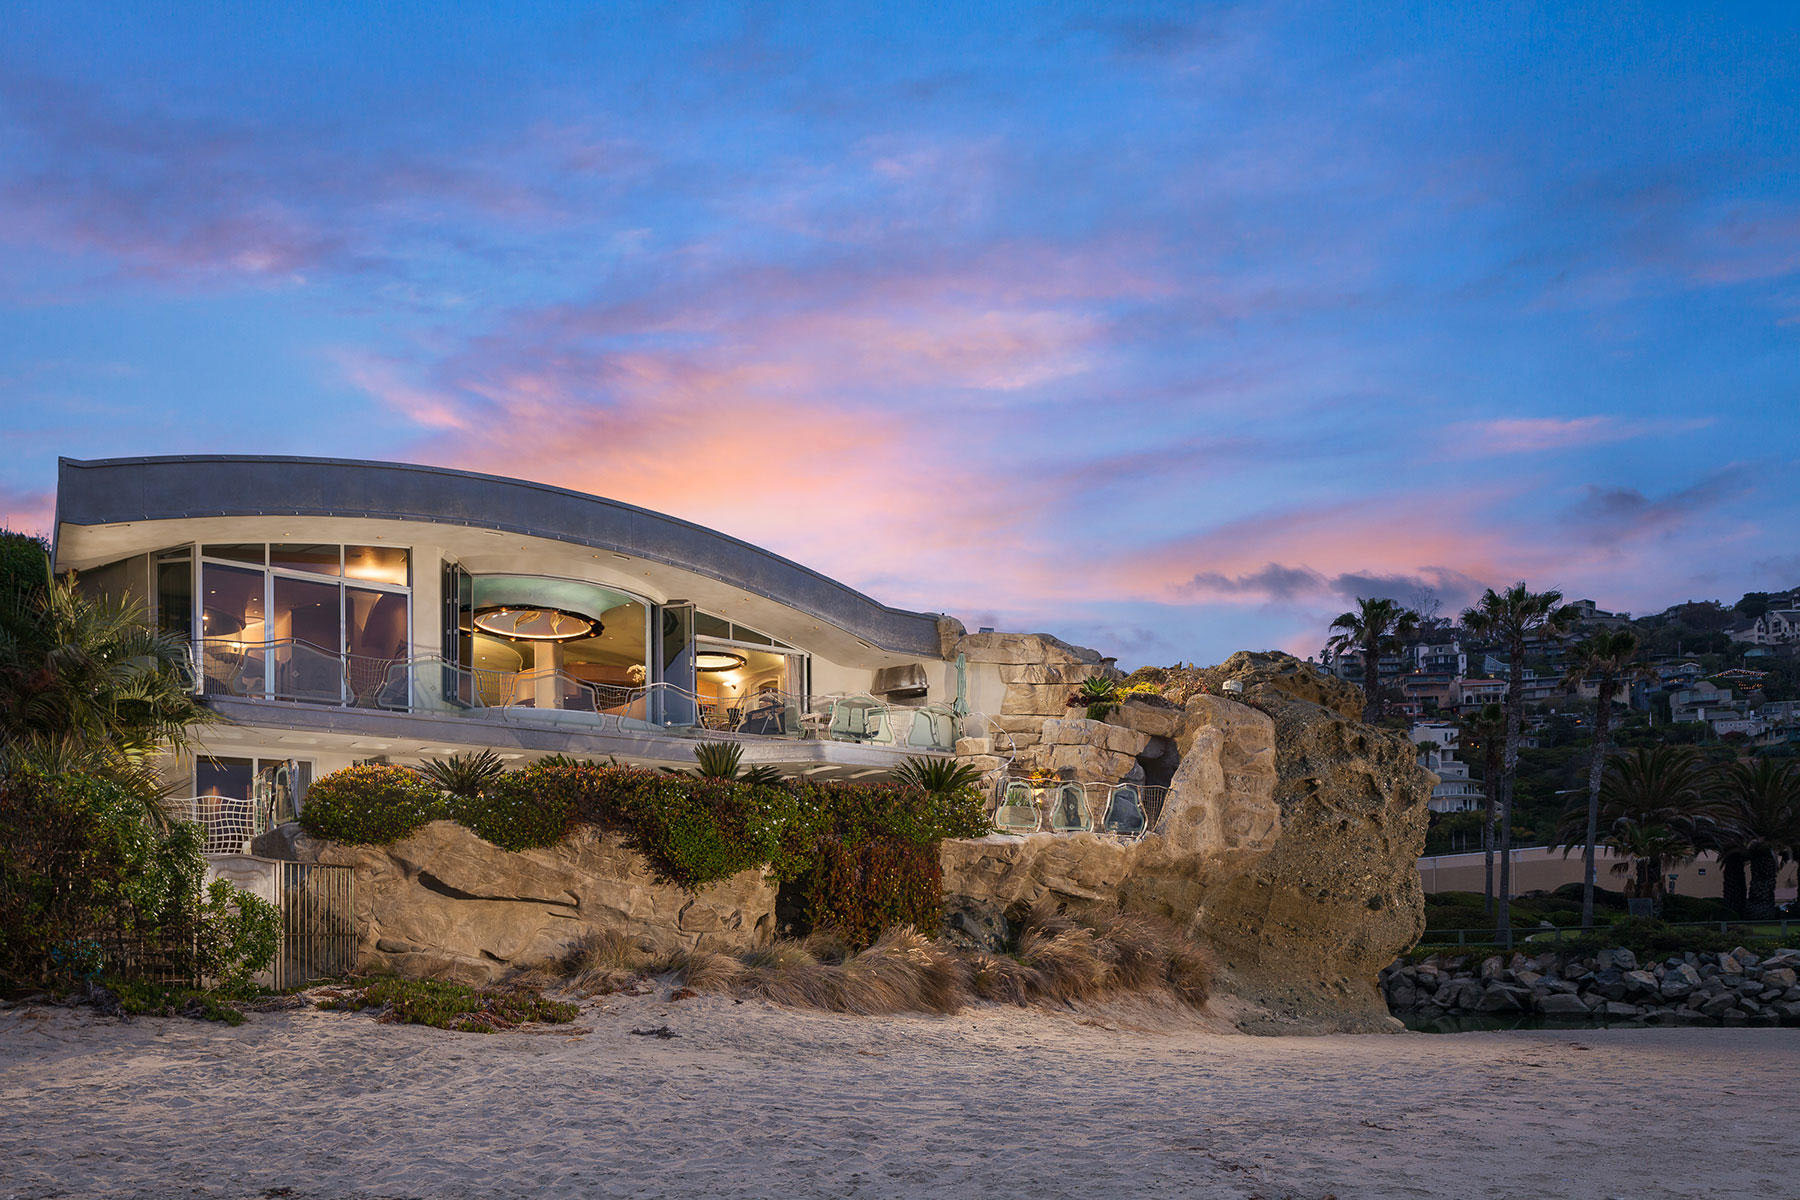 stainless steel restaurant kitchen cabinets 36 inch round table whimsical rock house in laguna beach | idesignarch ...